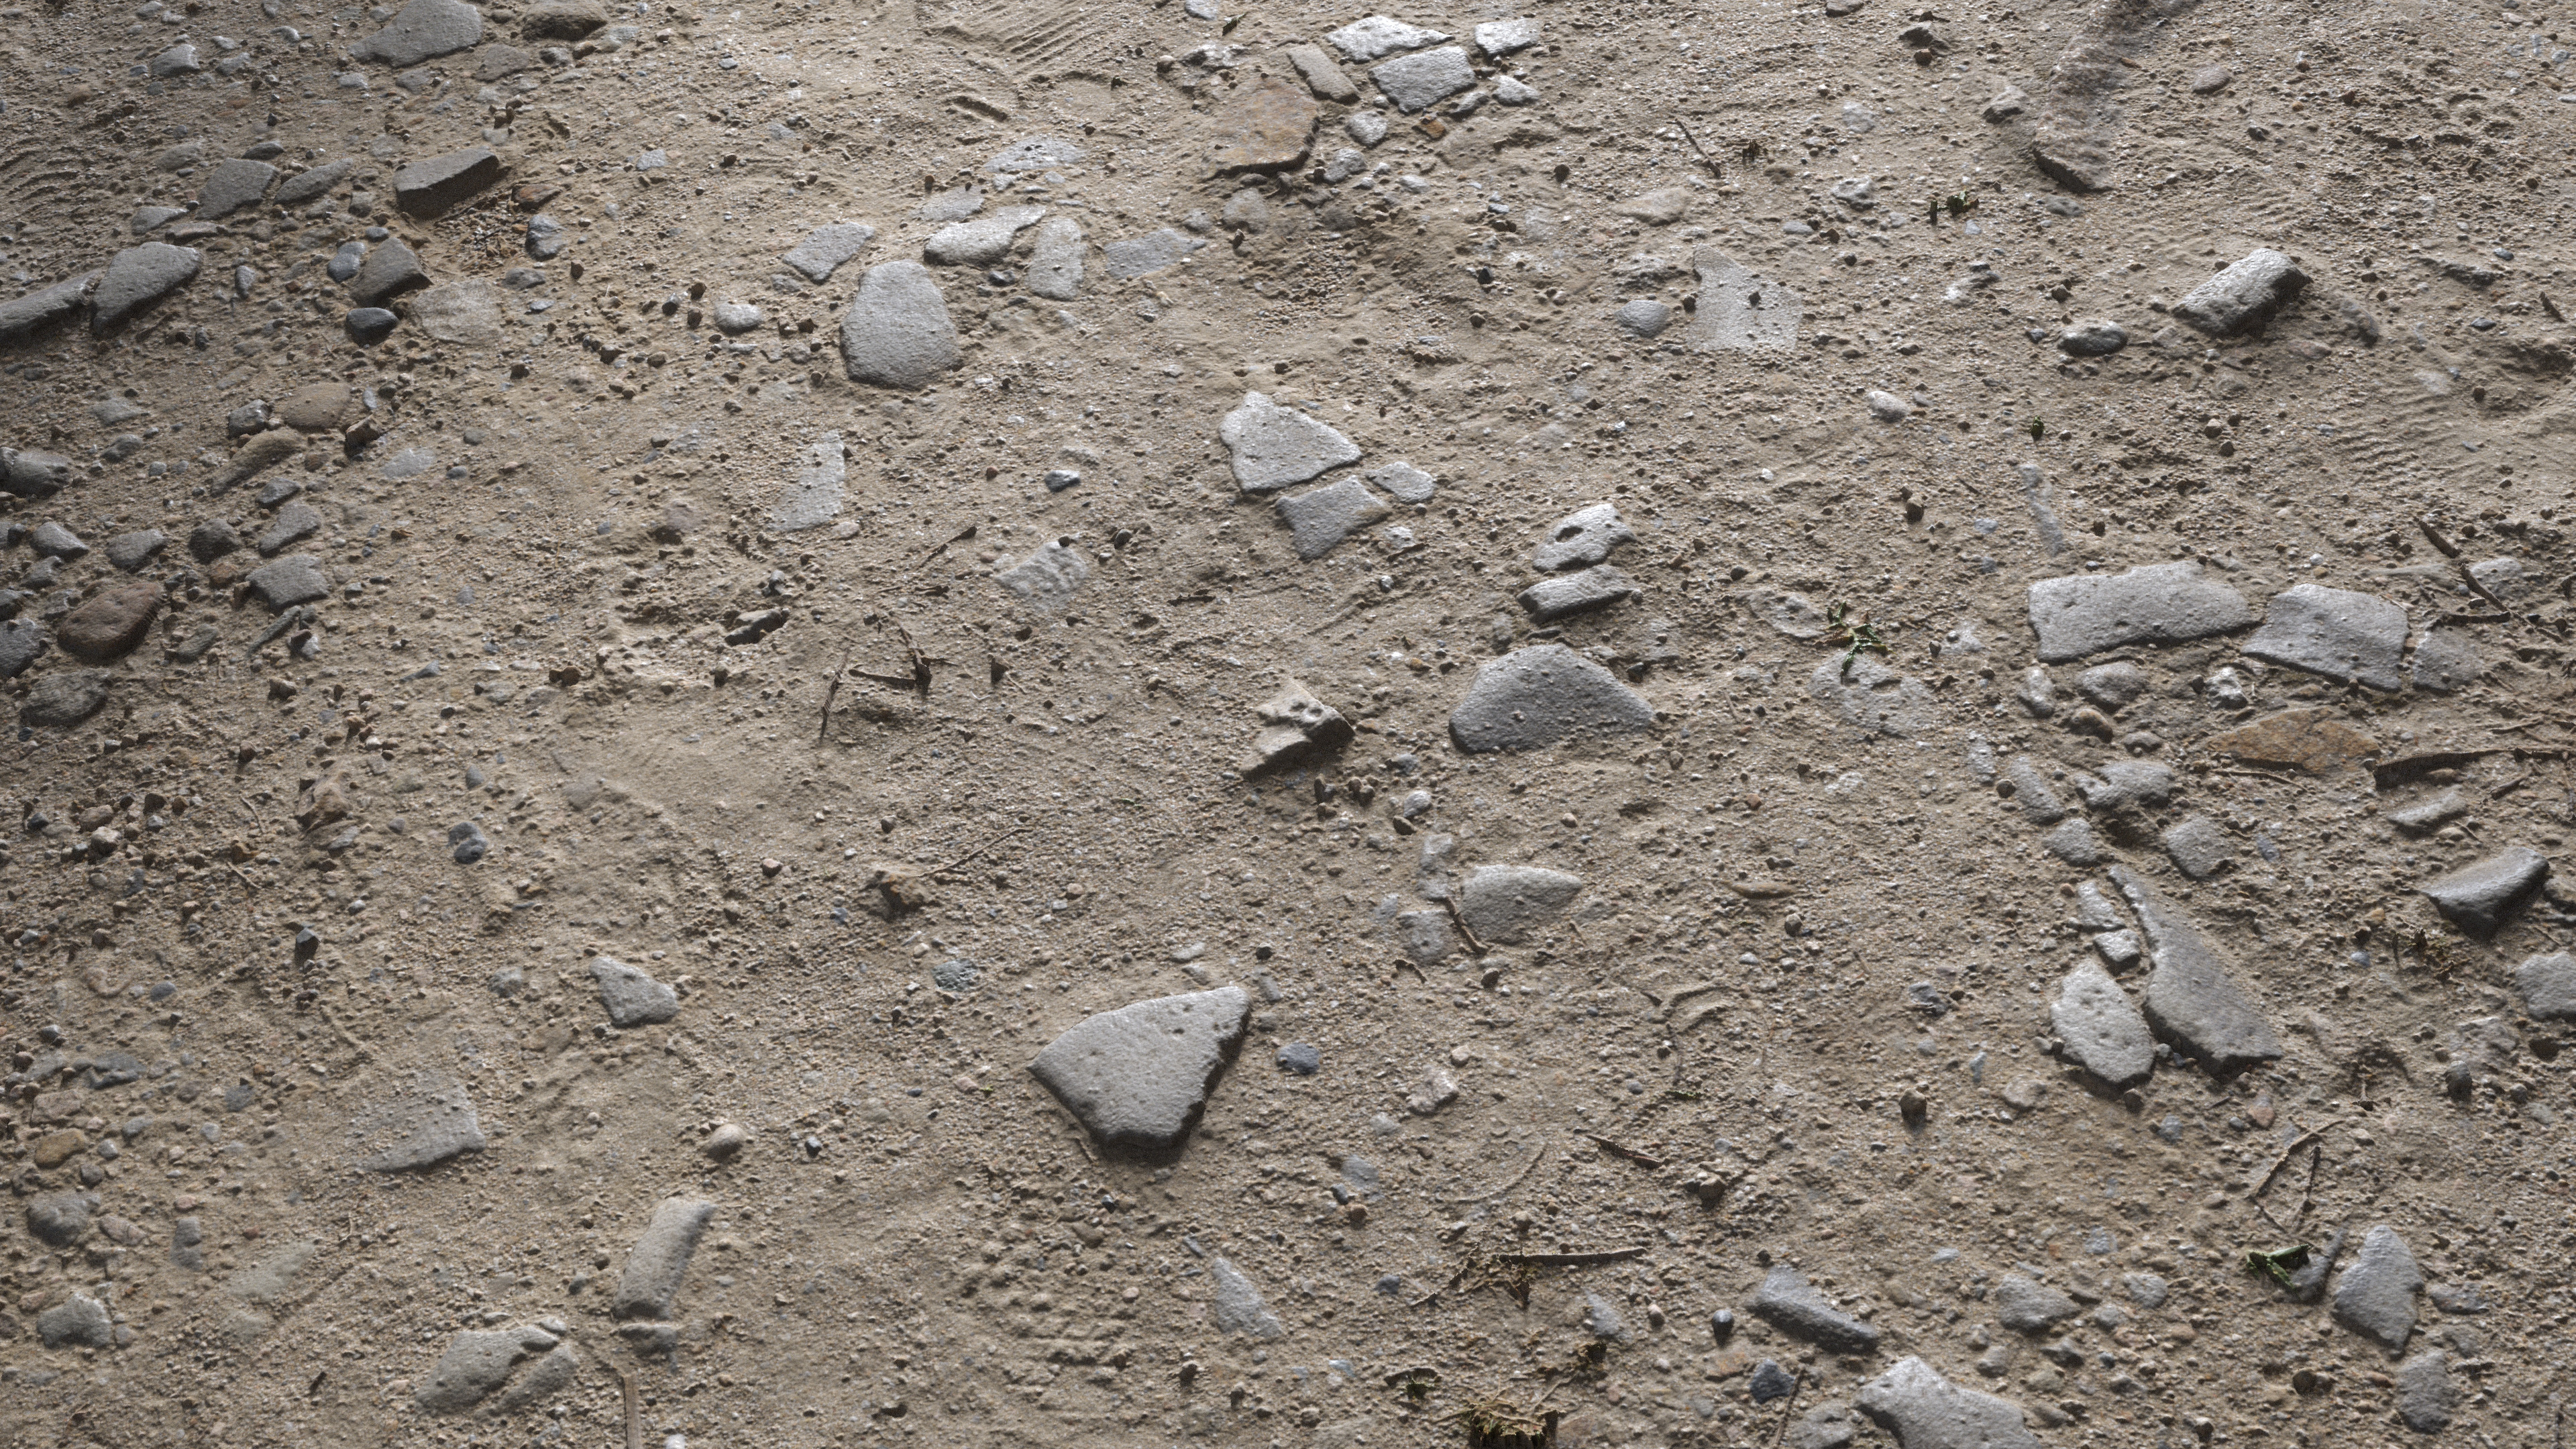 3D Scanned Soil Ground with Rocks - 2.5x2.5, 3x3, 4x4 meters